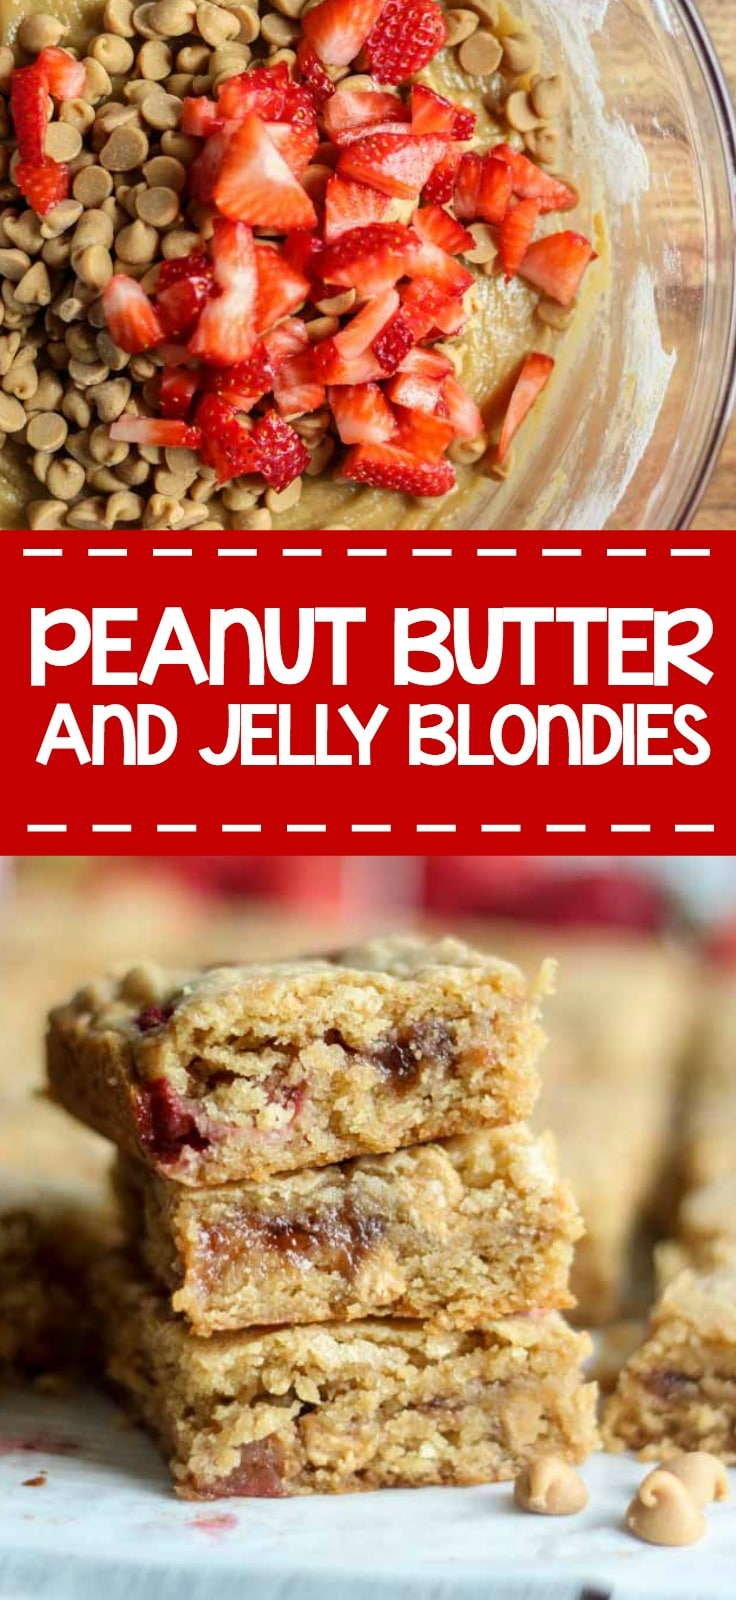 peanut-butter-and-jelly-blondies